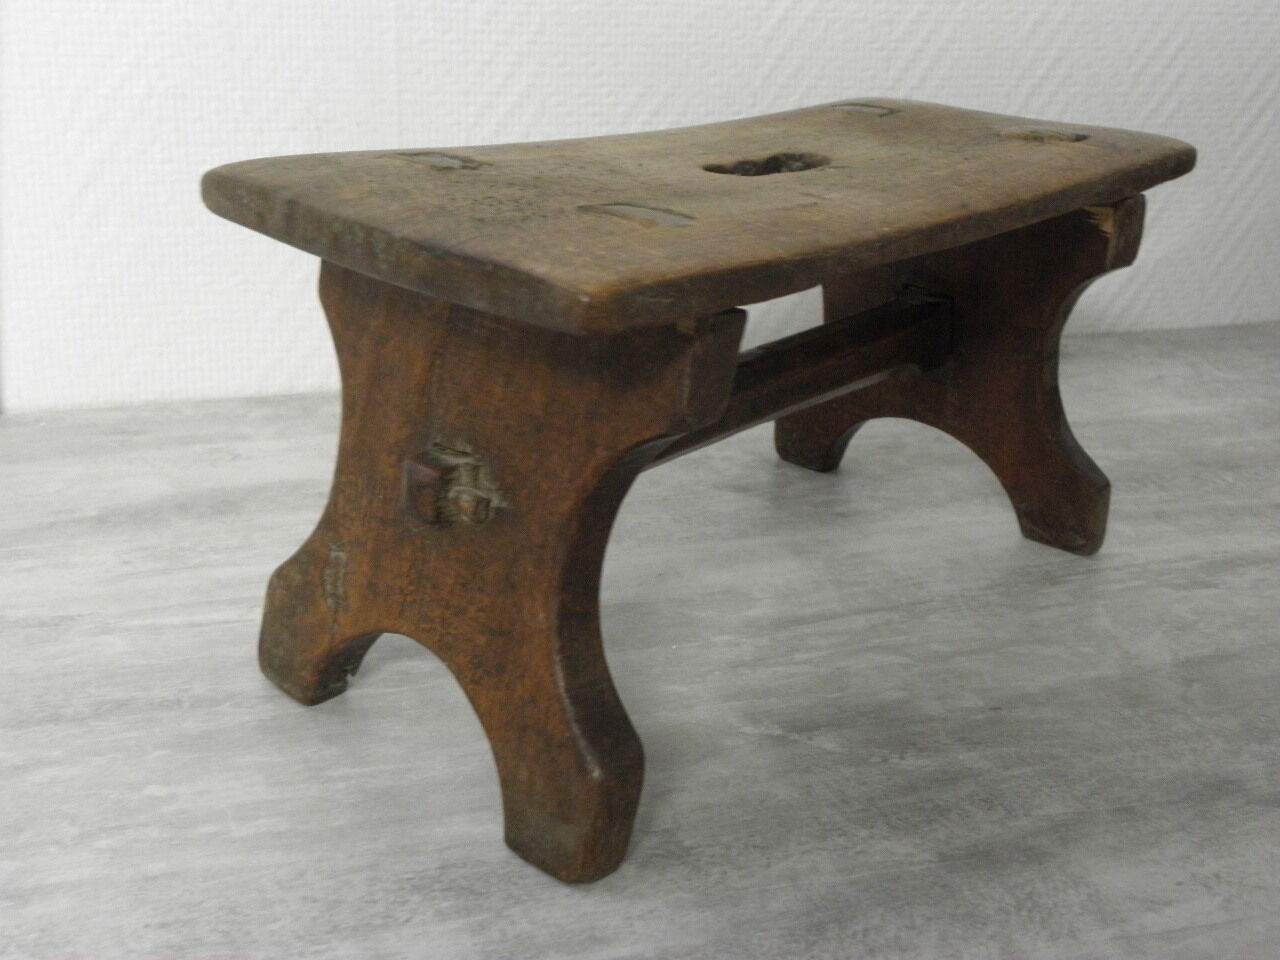 Superb img of primitive Stool wood Stool antique has to milk cow campaign country  with #5F4832 color and 1280x960 pixels